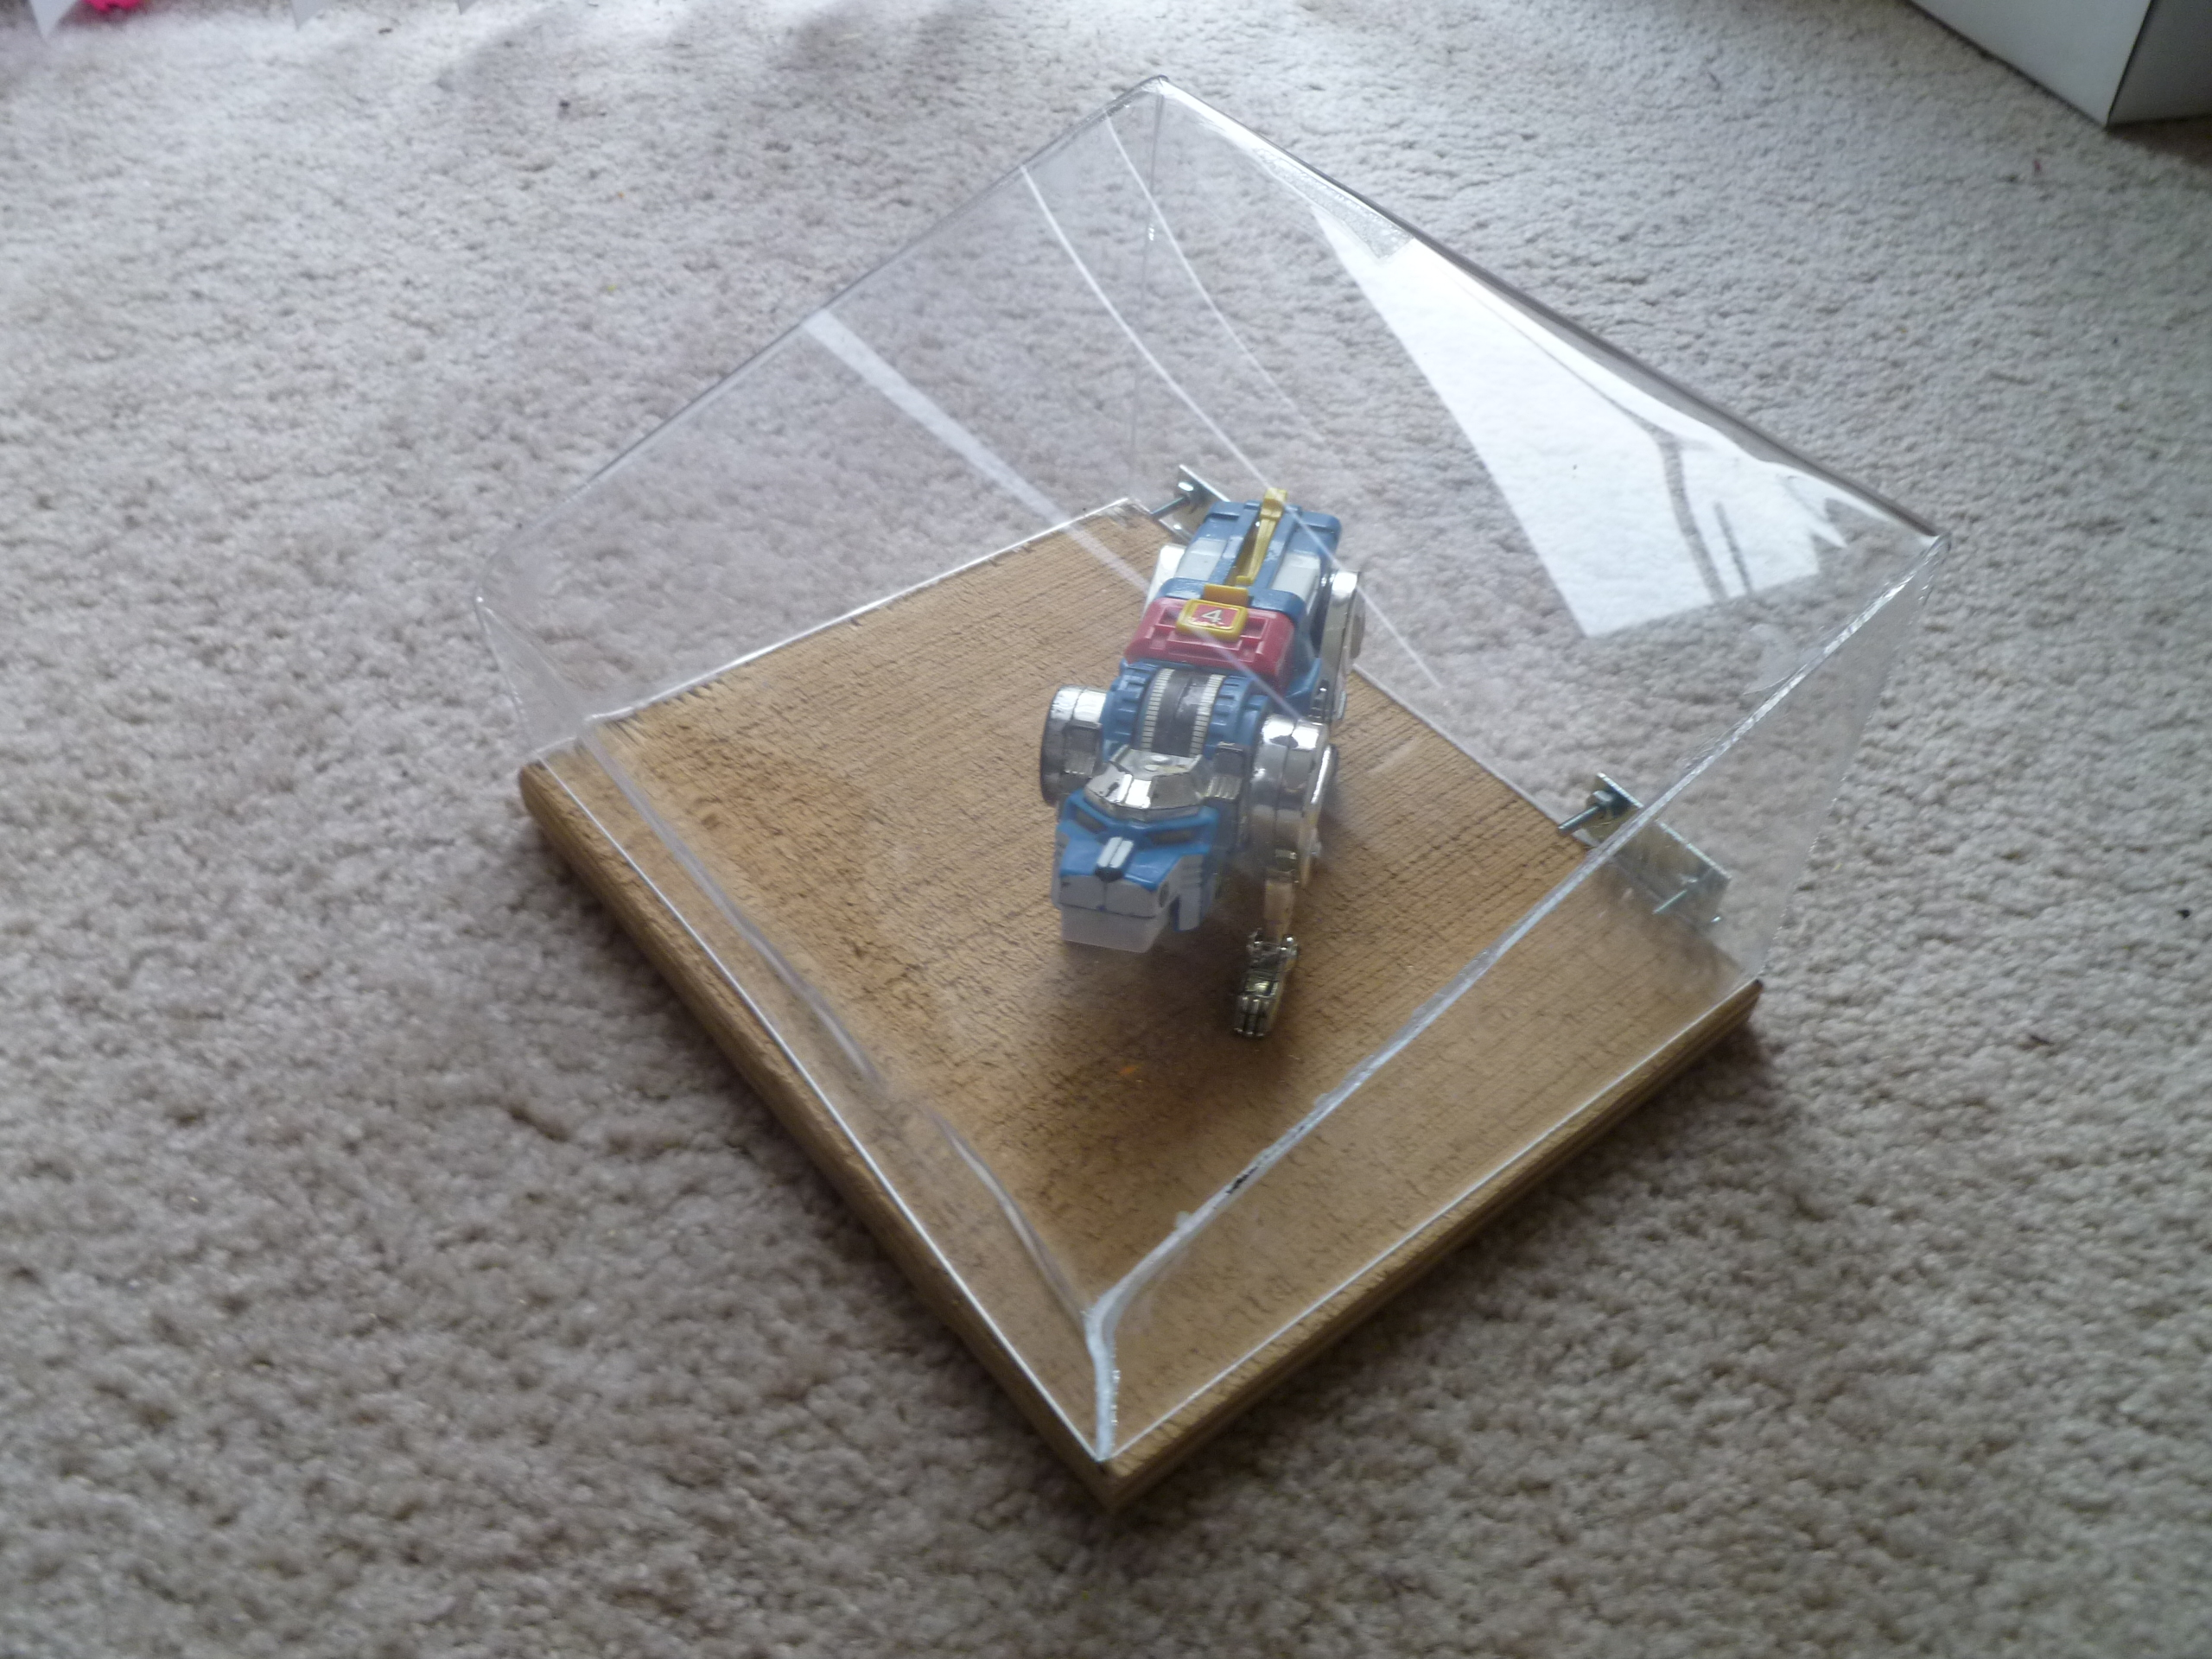 Workshop Wednesday: How To Heat-Bend Acrylic Enclosures